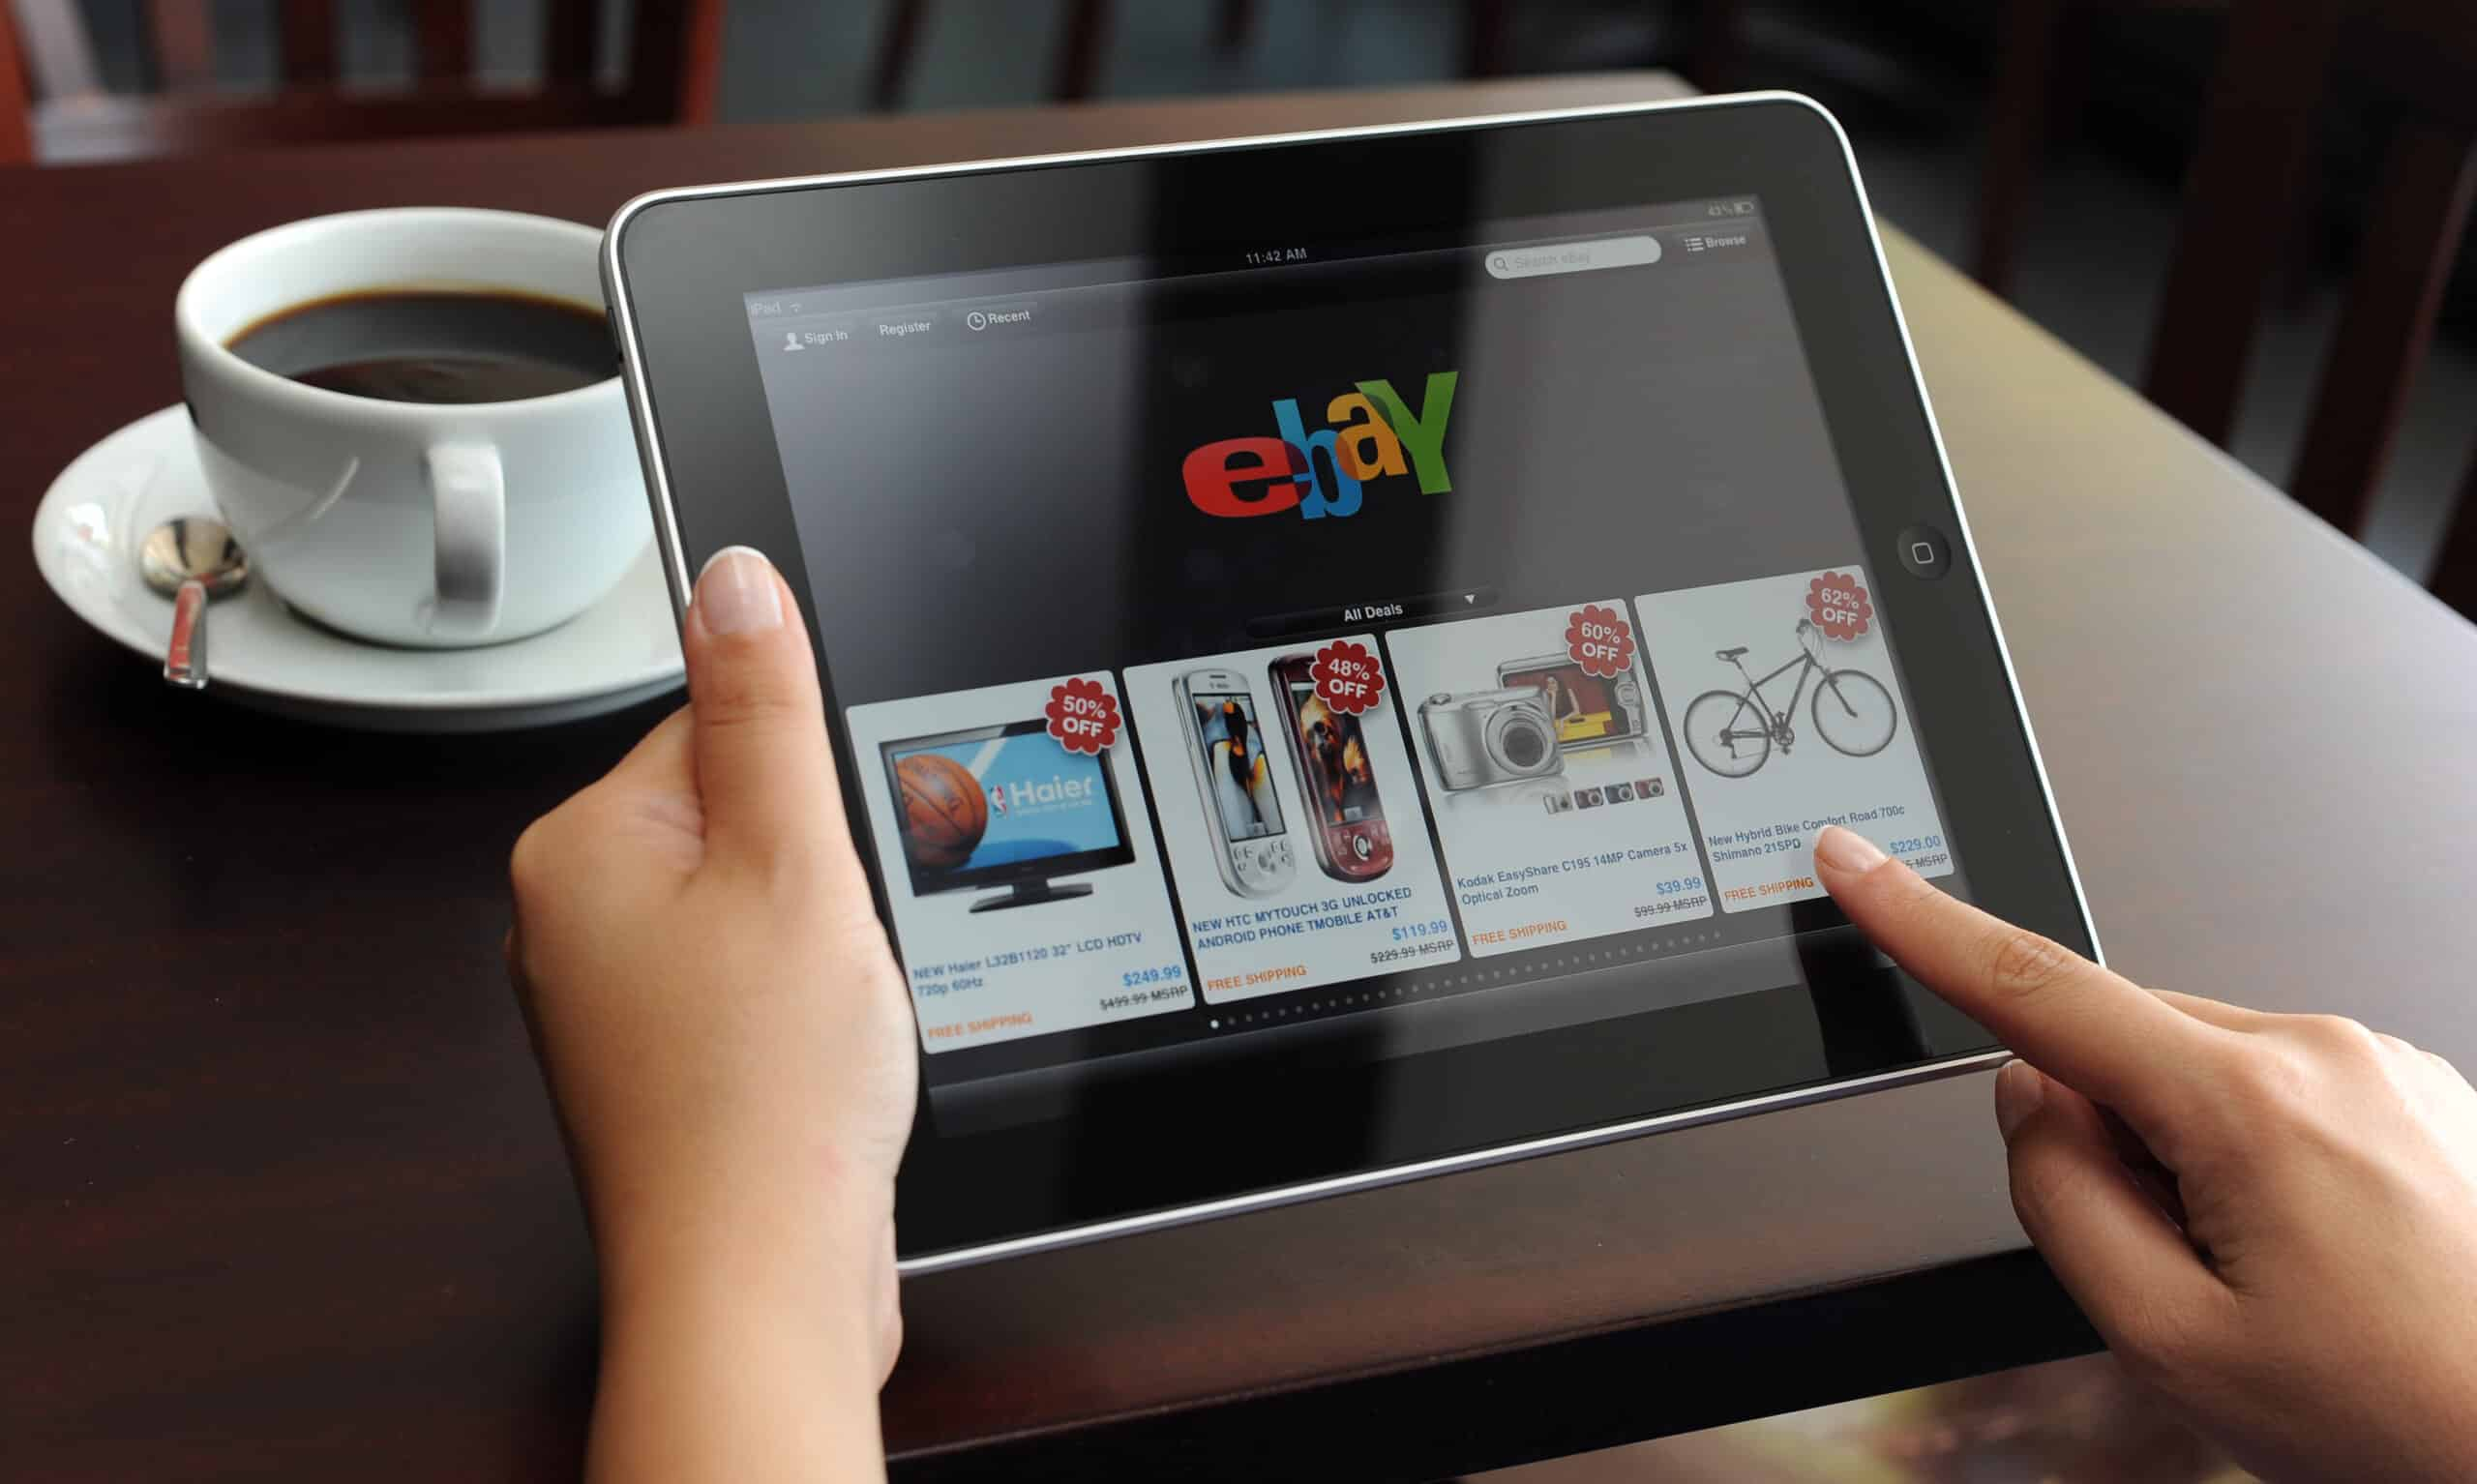 d holding iPad displaying eBay application. eBay seller update autumn 2021 came out in early Septermber